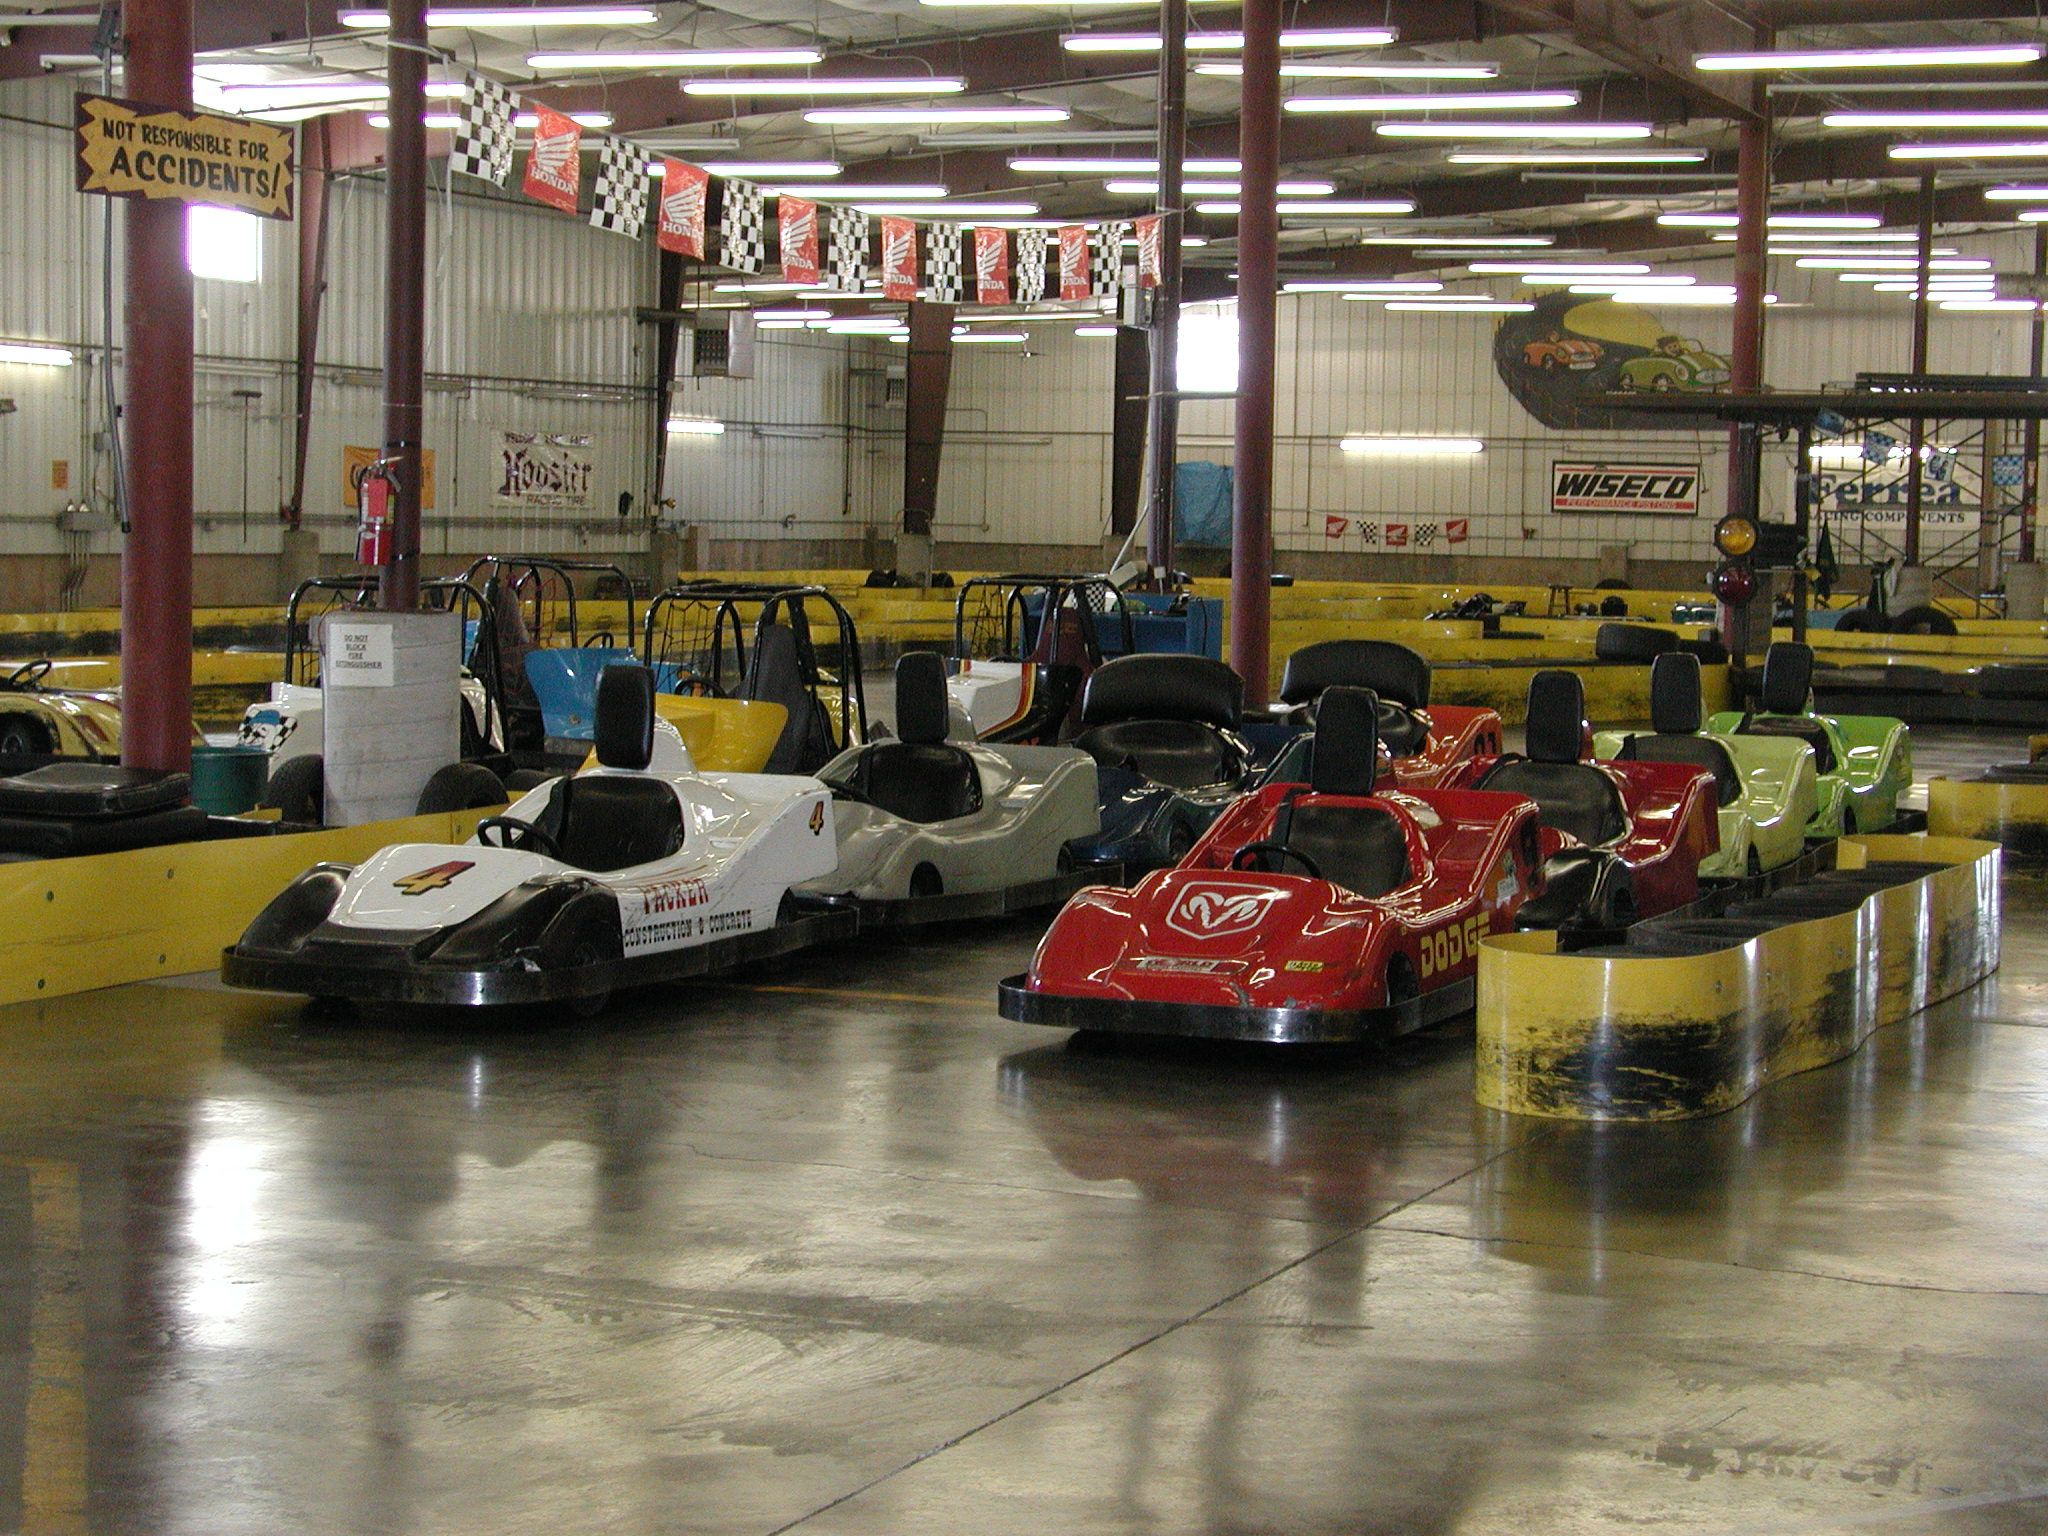 Flags And Wheels In Rapid City Rapid City South Dakota Vacation Indoor Amusement Parks